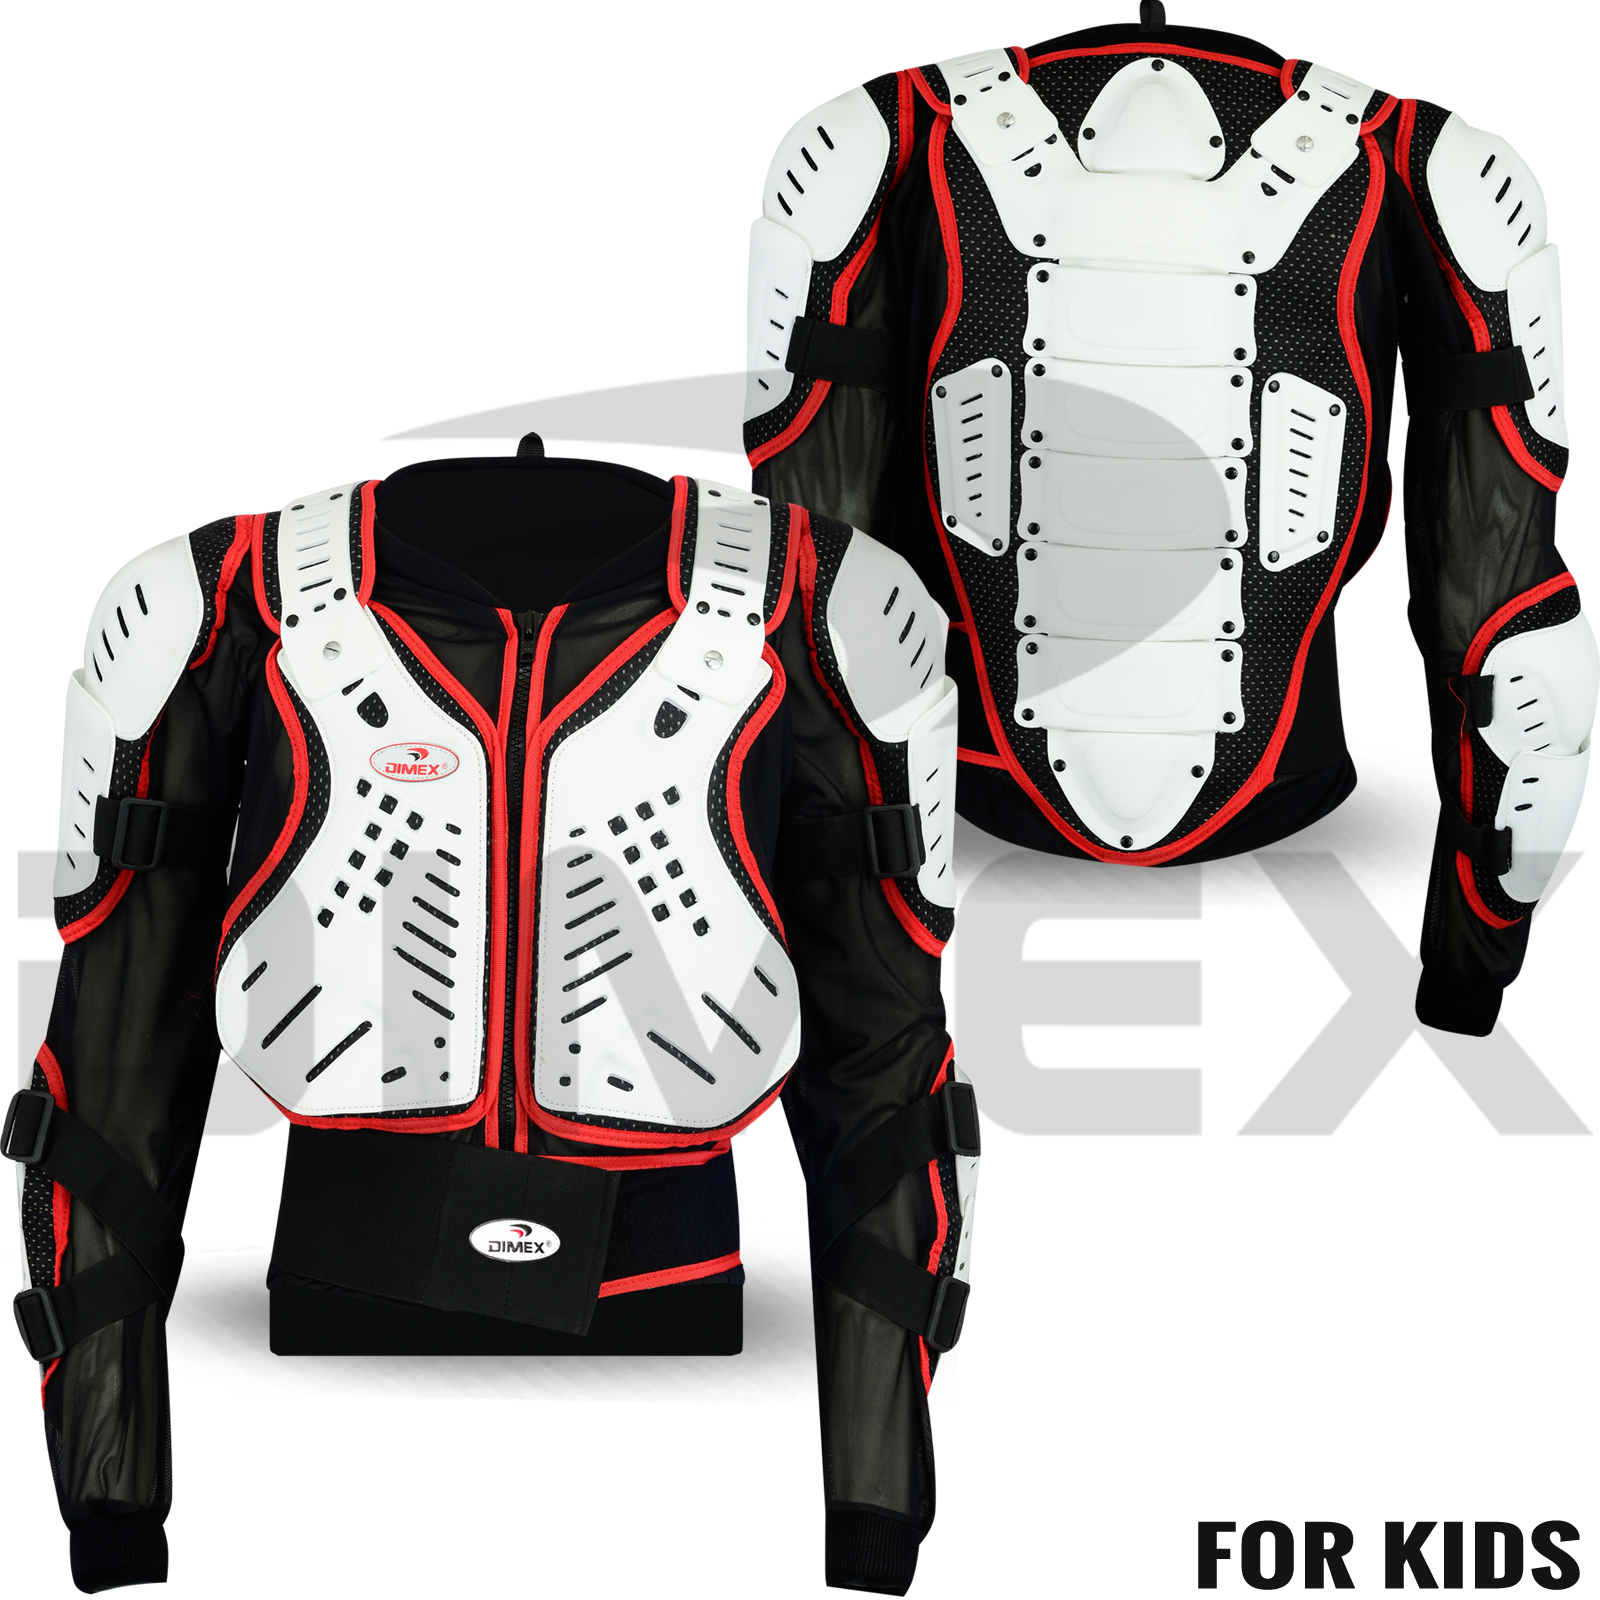 Kids Childrens Body Armour with Knee Protector CE Approved Motocross Motorbike Motorcyle Protection Jacket Motorcycle Body Guard Red, 8